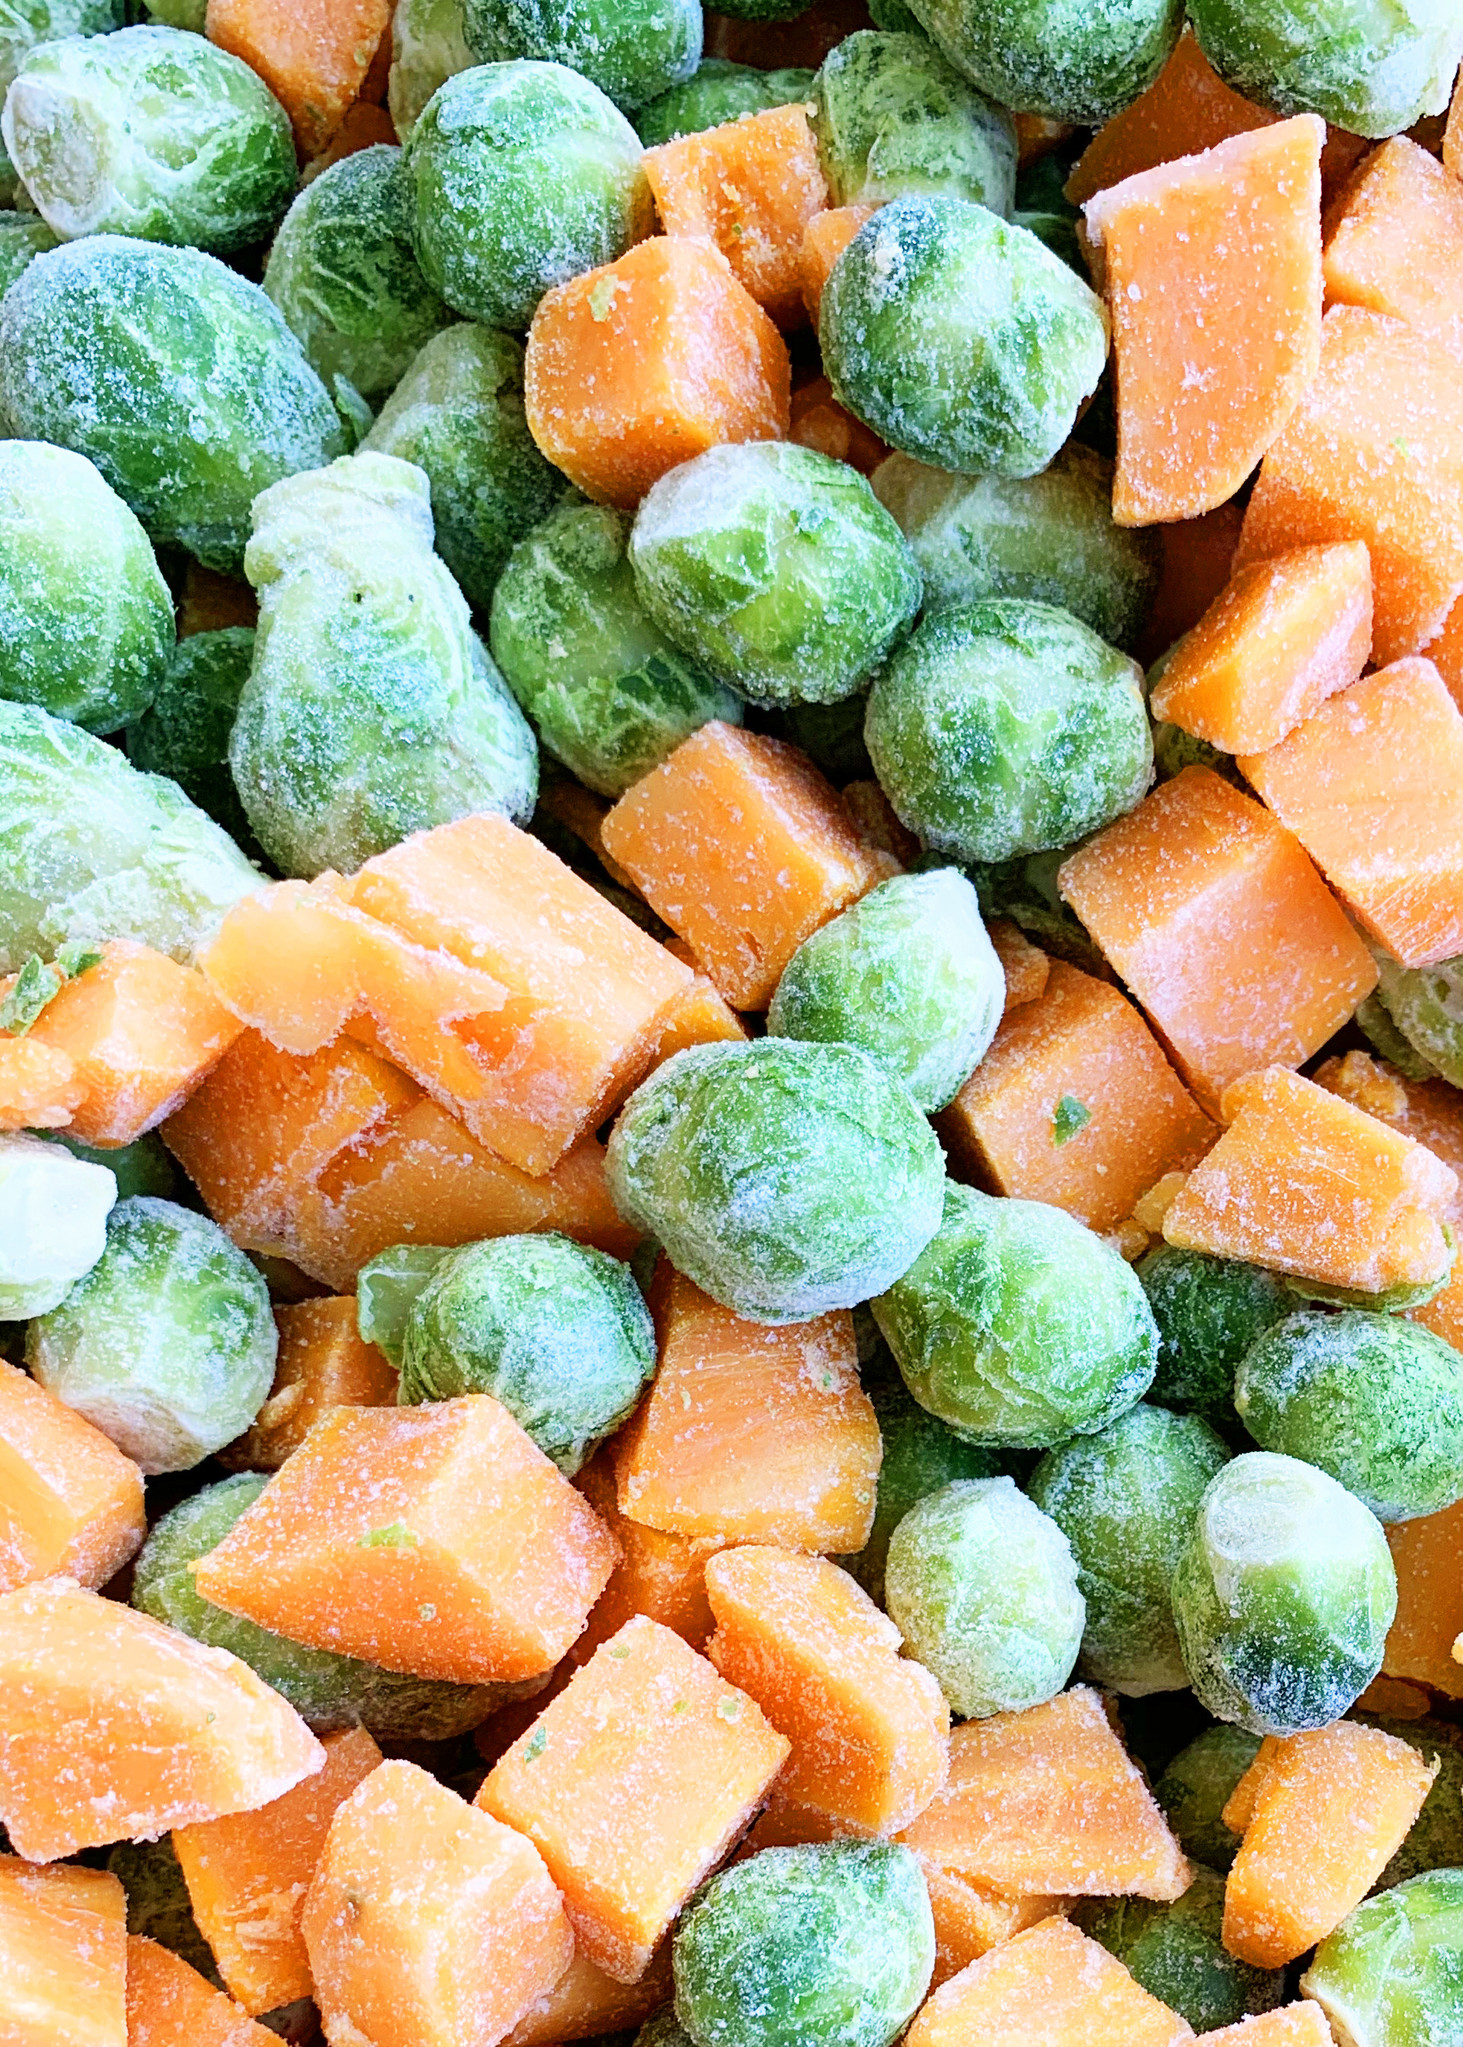 Brussels sprouts & sweet potatoes